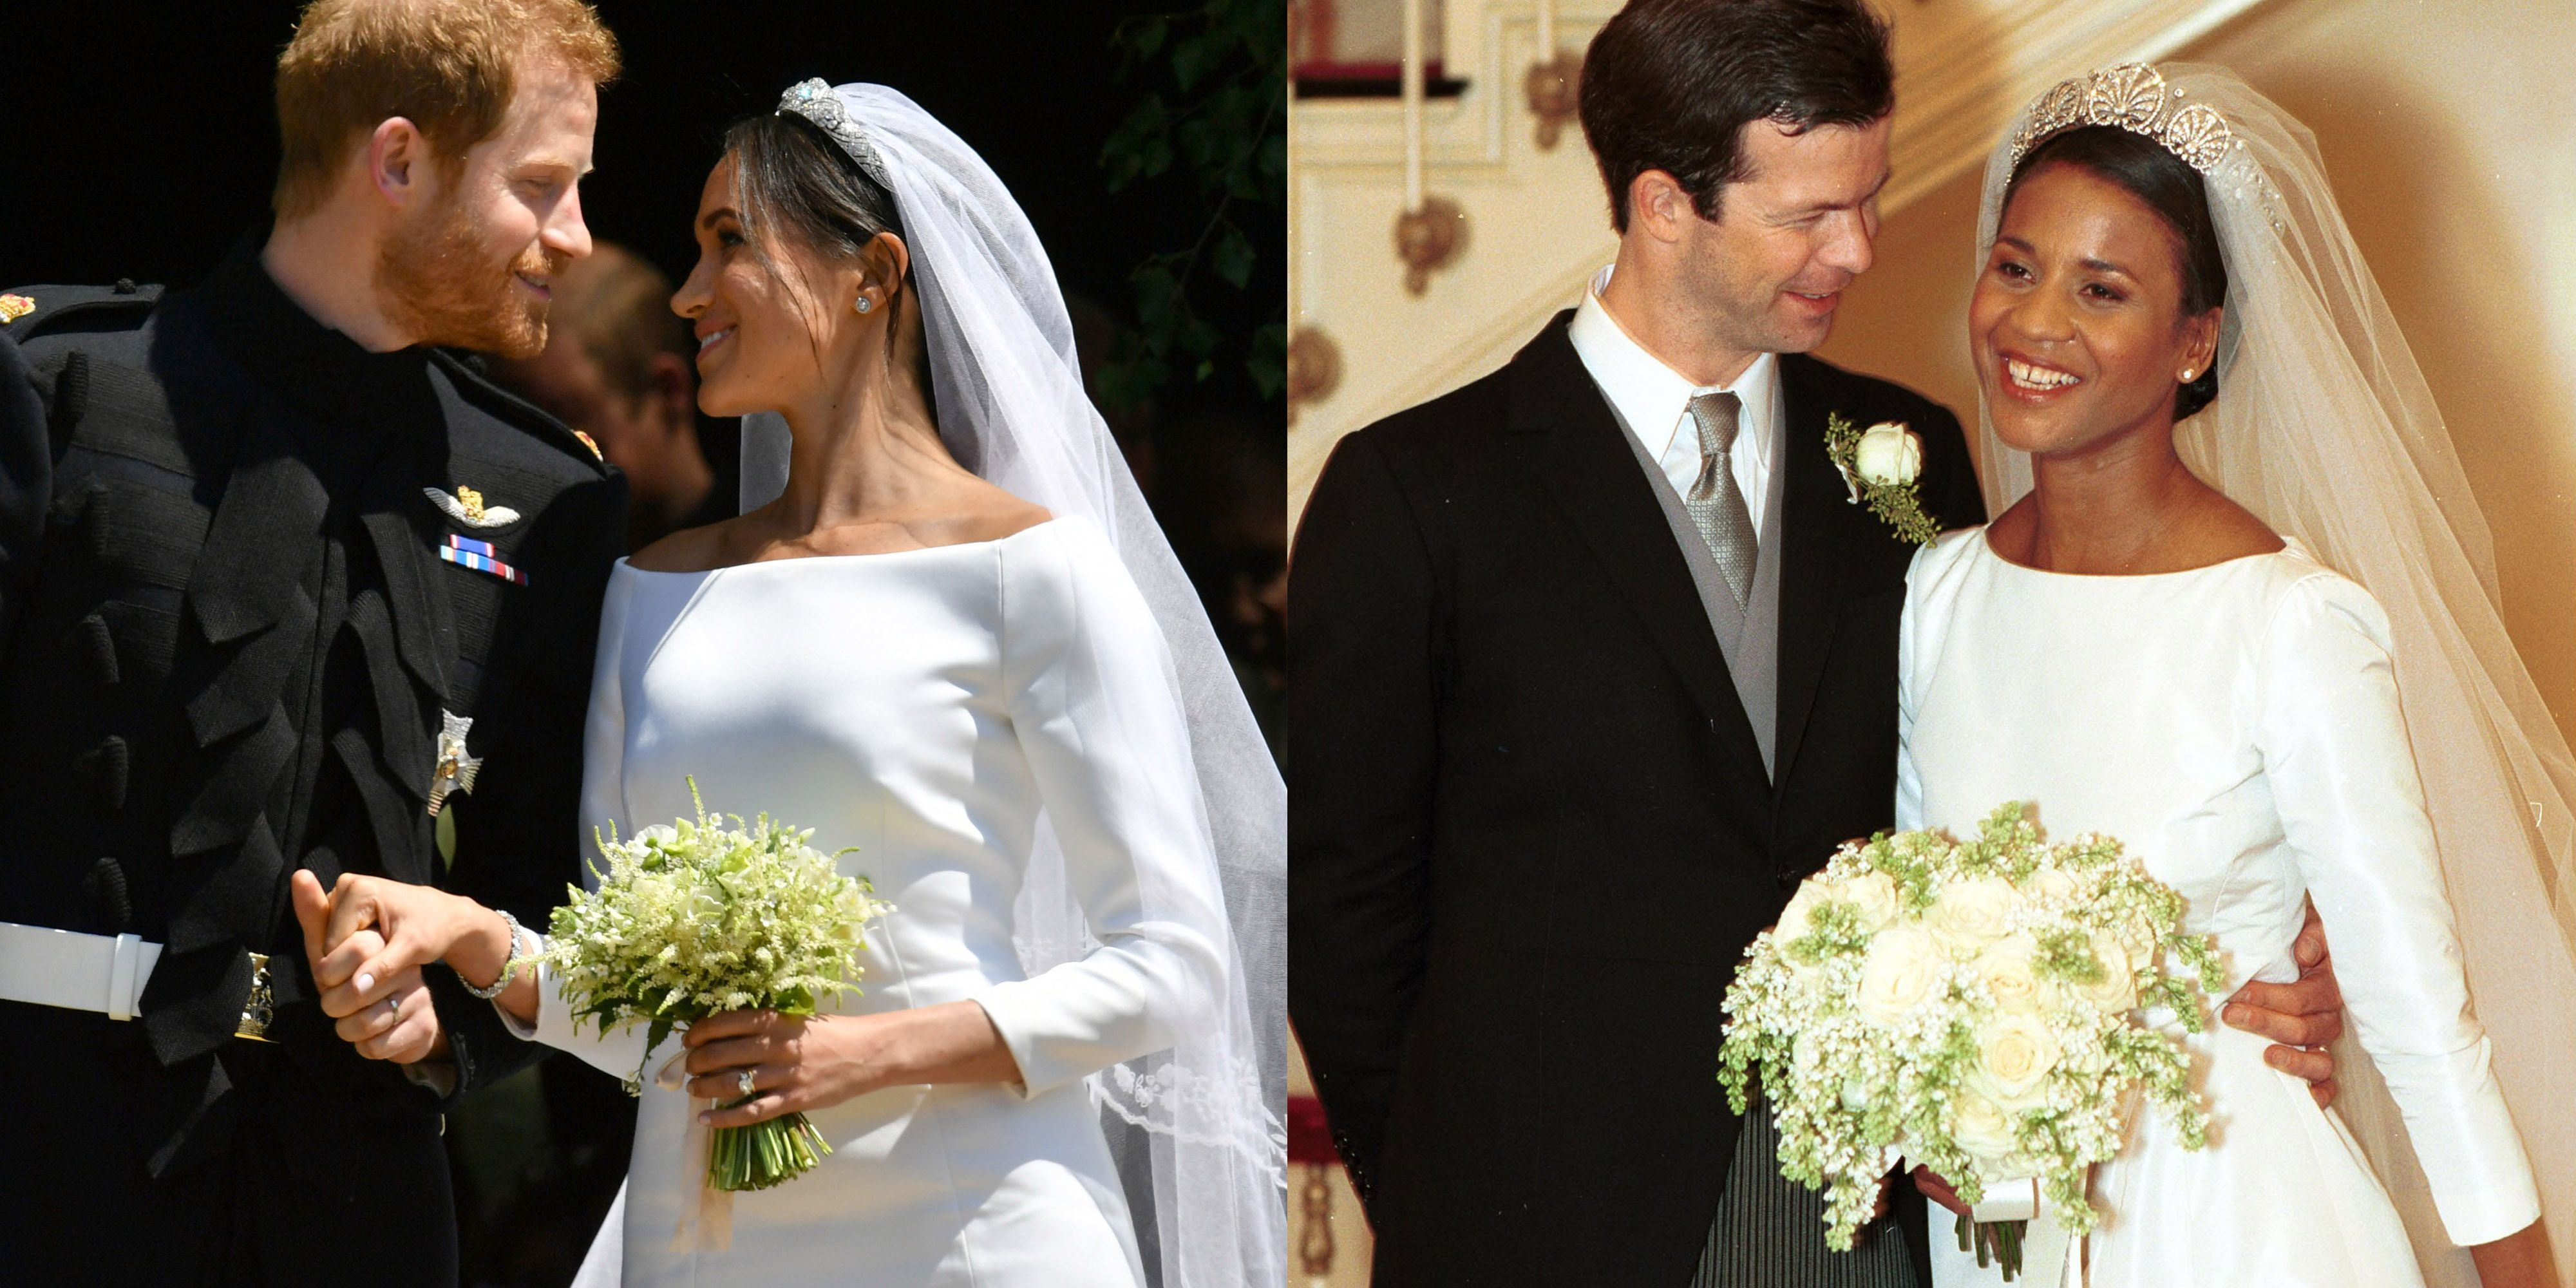 meghan markle s royal wedding dress compared to princess angela of liechtenstein s meghan markle s royal wedding dress